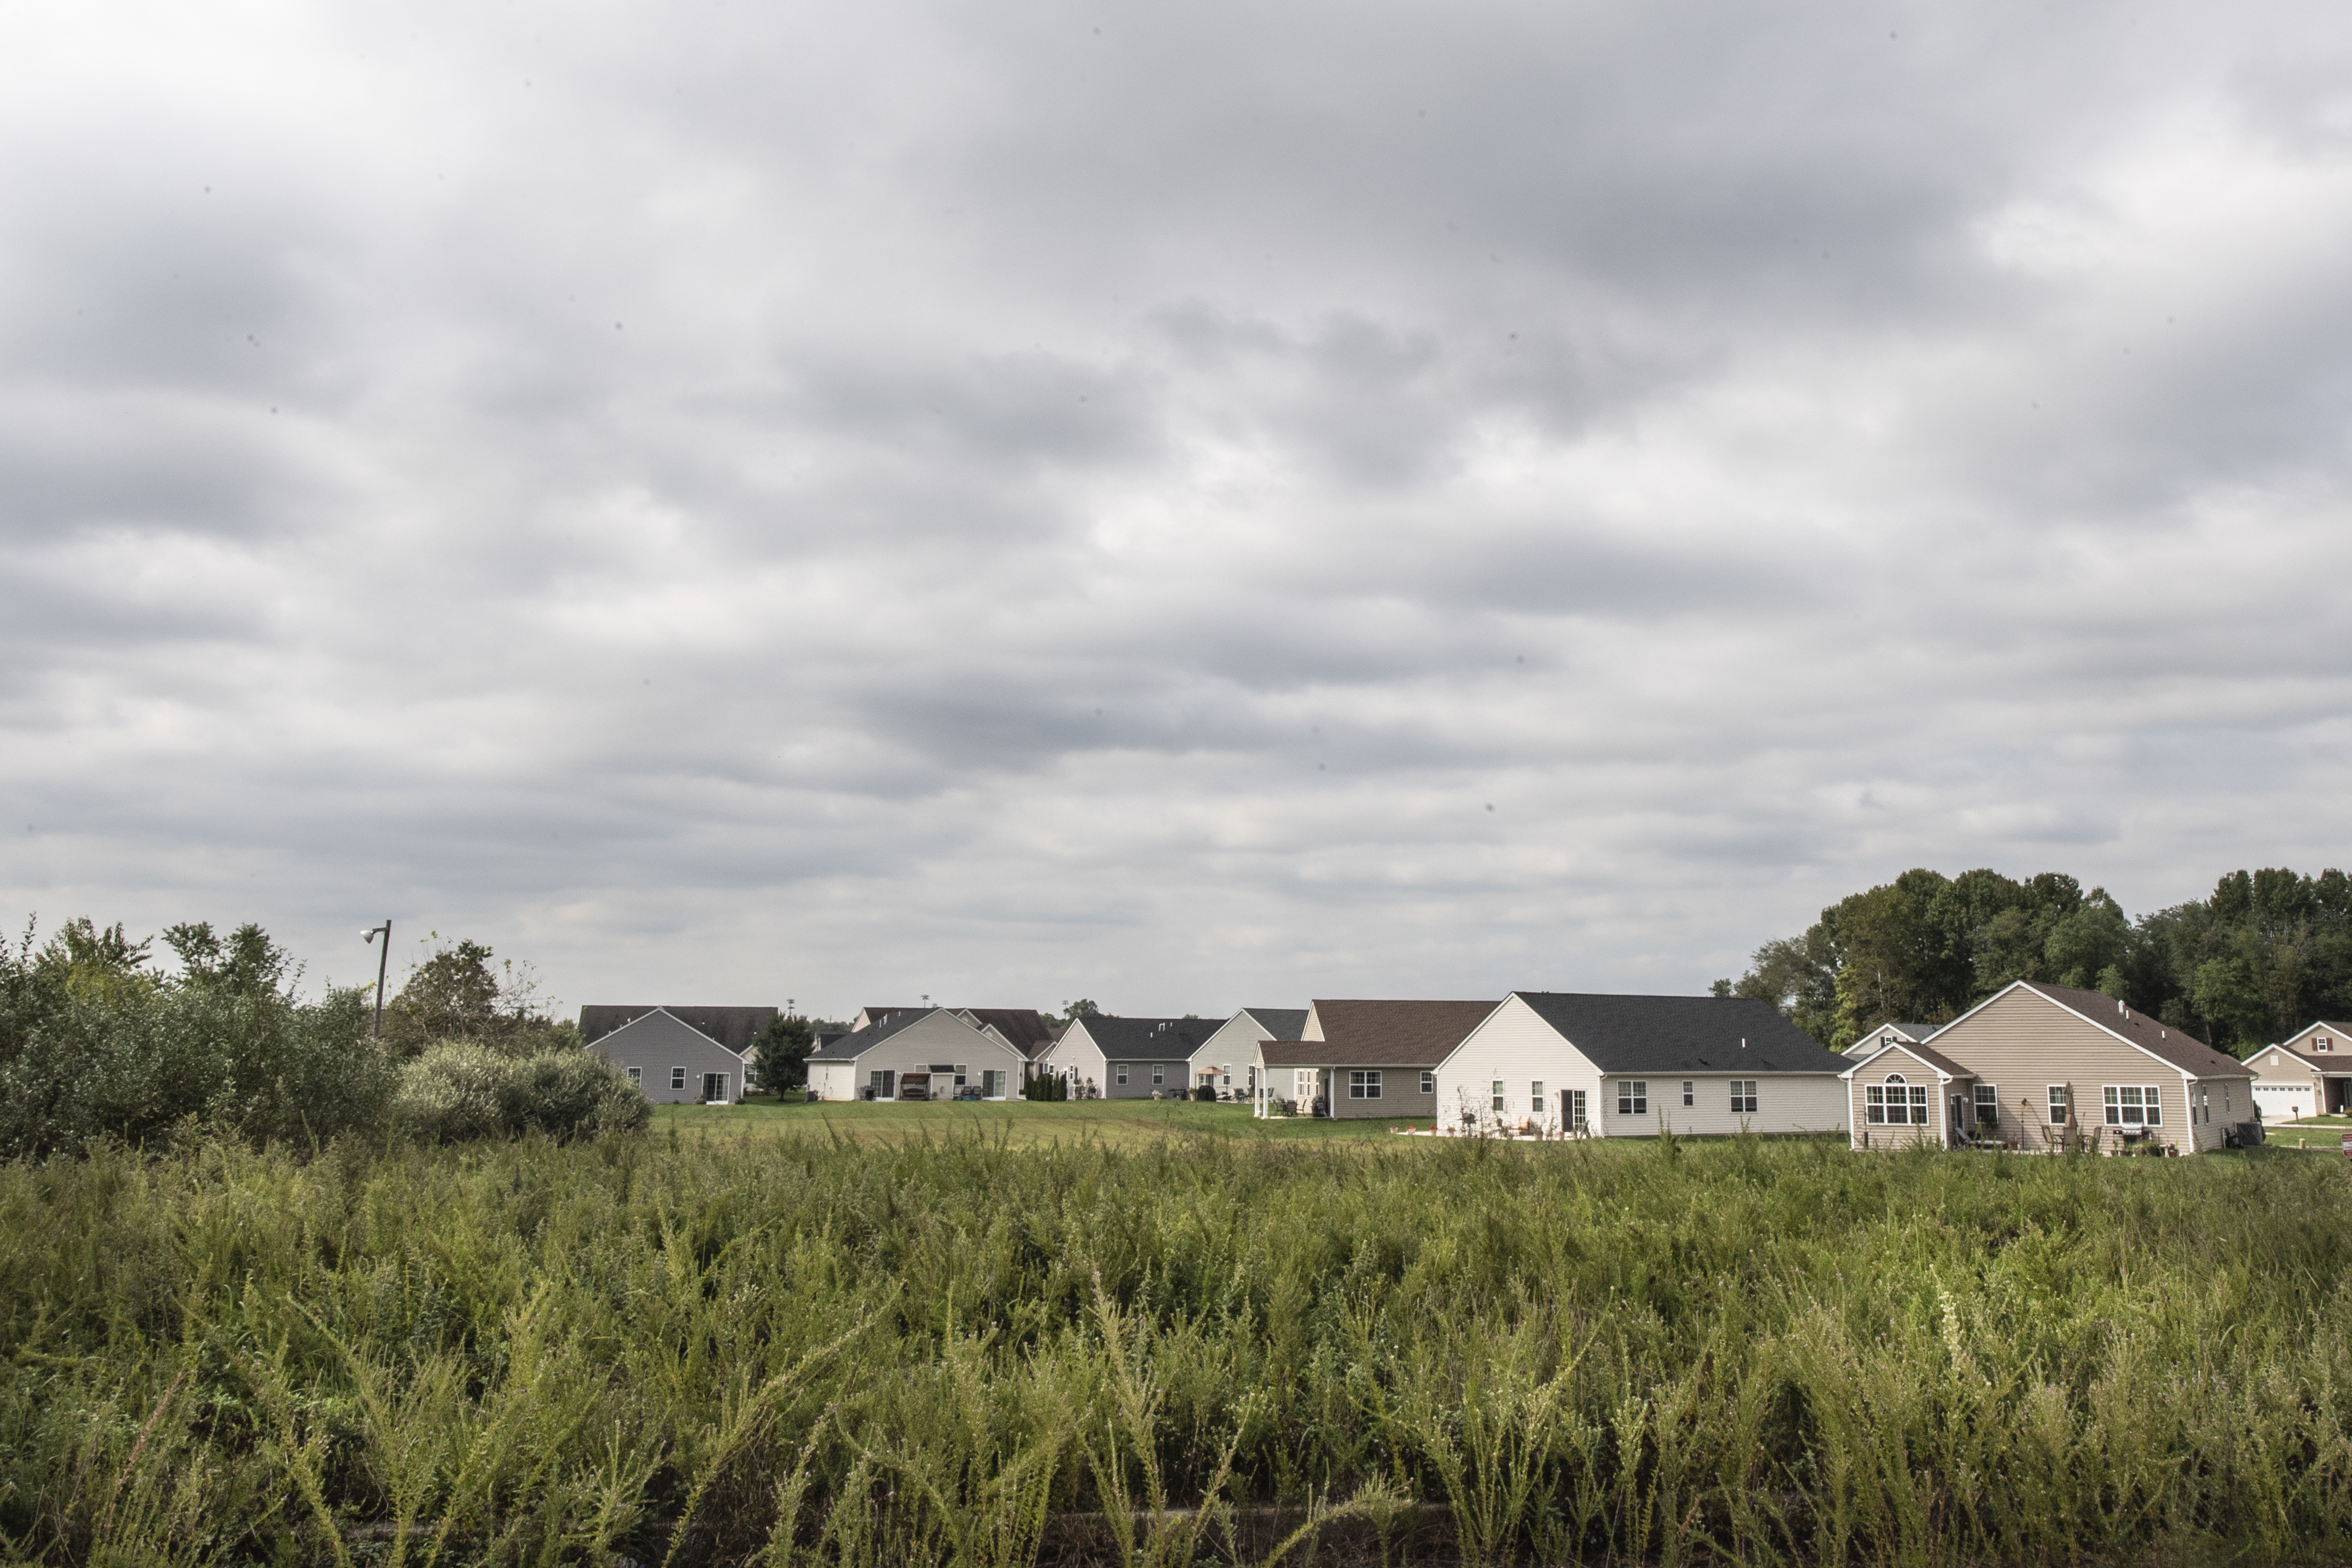 A view of open land with housing behind it is shown at the Cenco Boulevard Industrial Park, in Clayton, New Jersey.